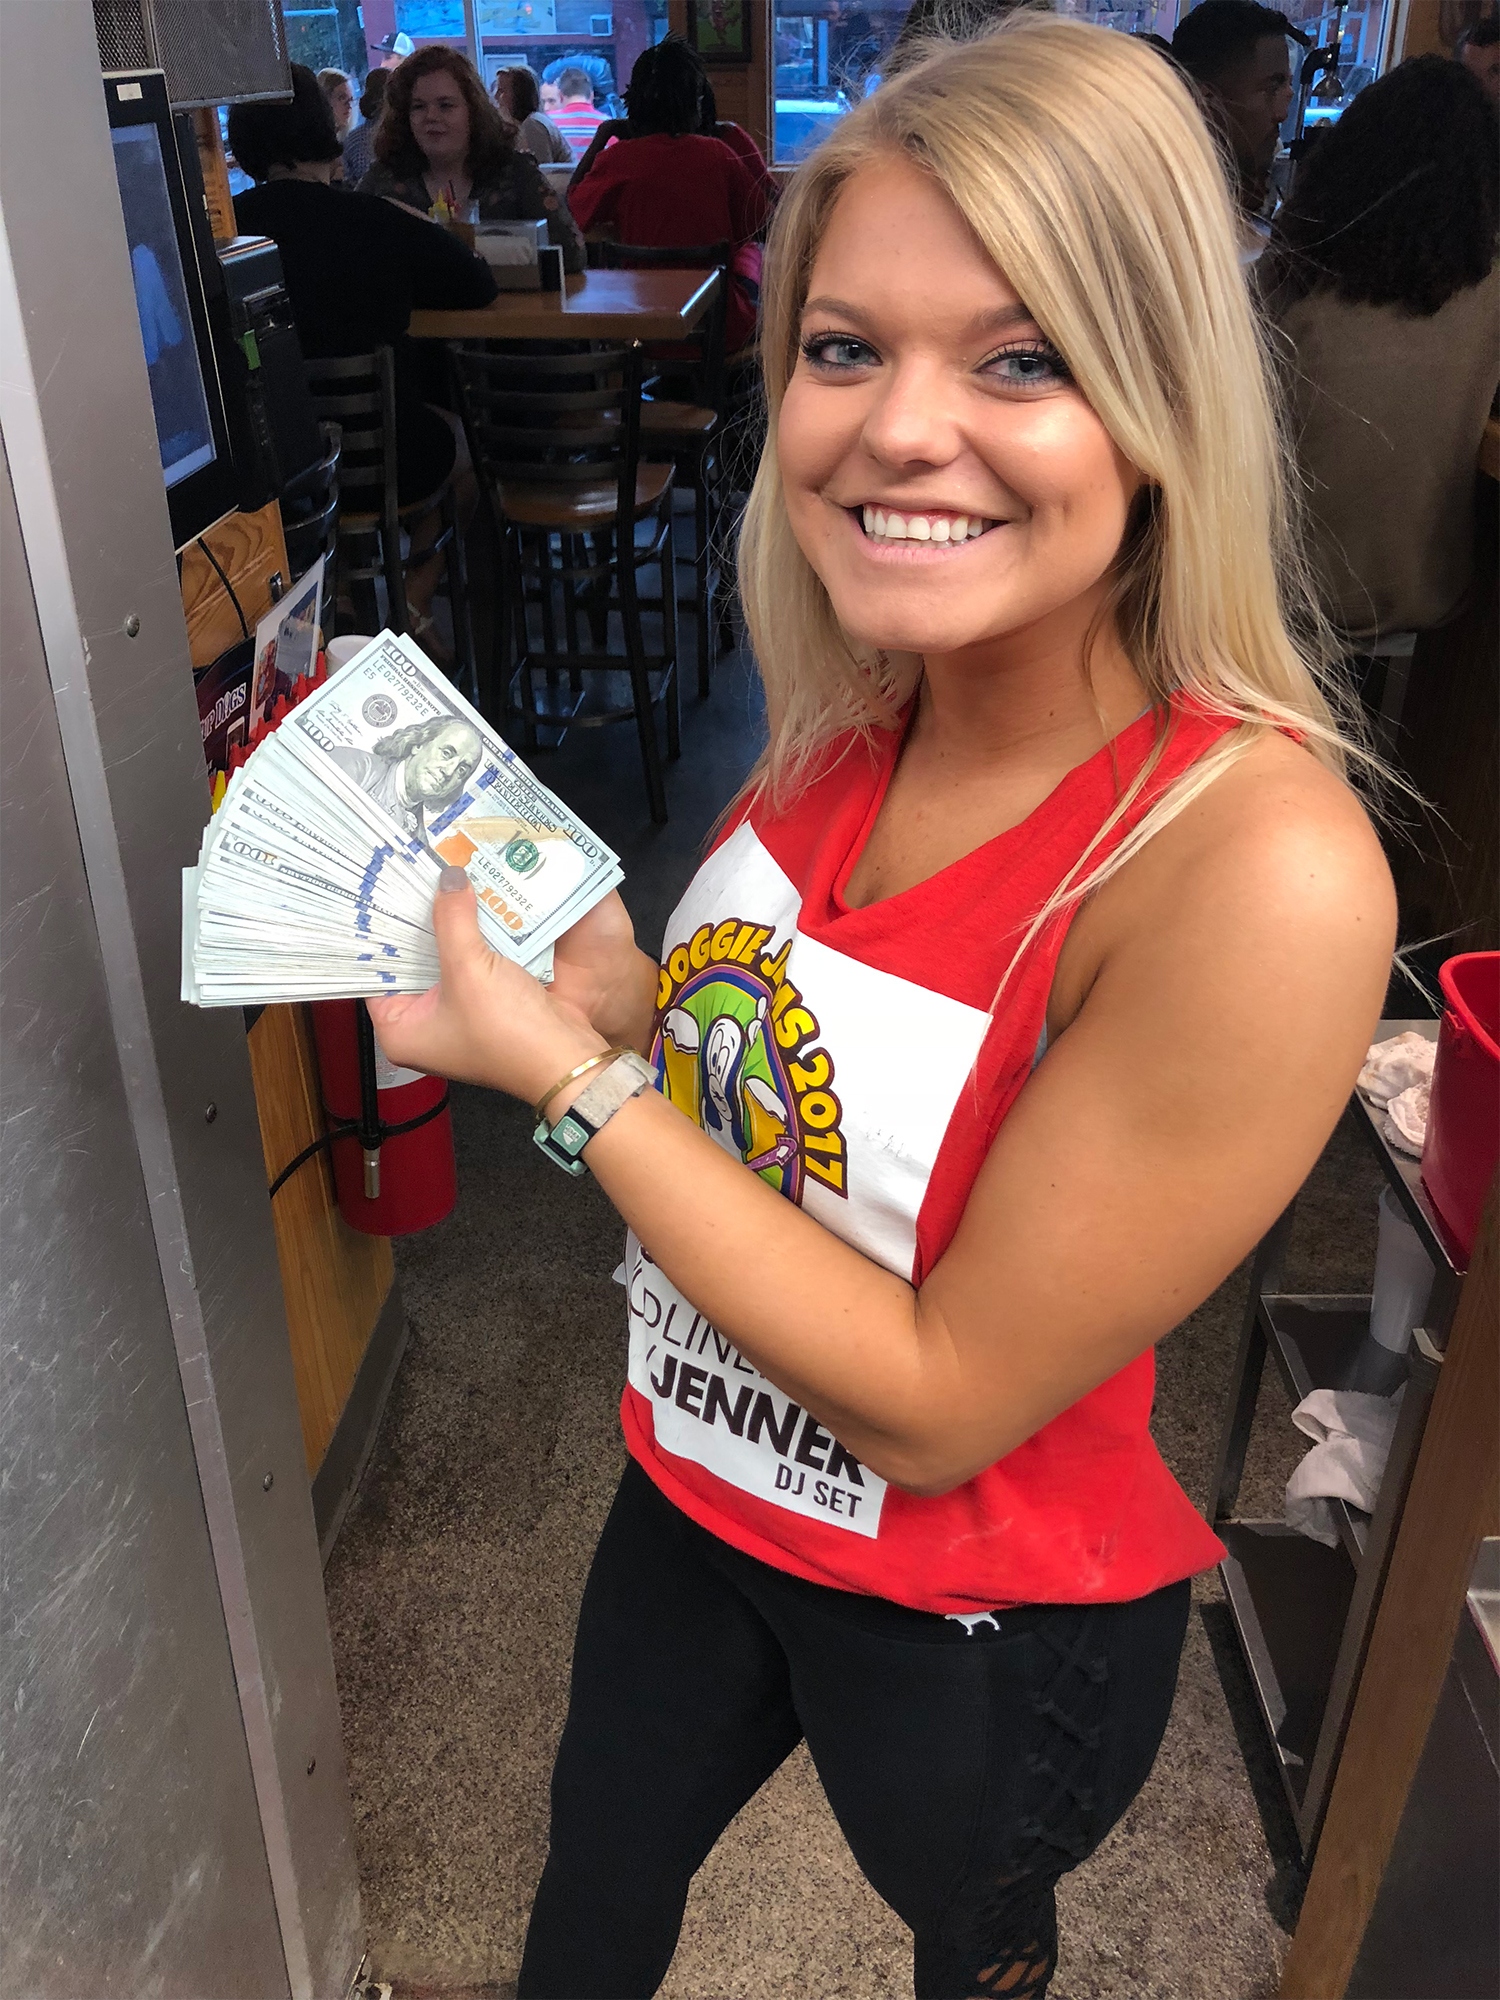 North Carolina Waitress Gets a $10,000 Tip — and Splits It with Her Coworkers